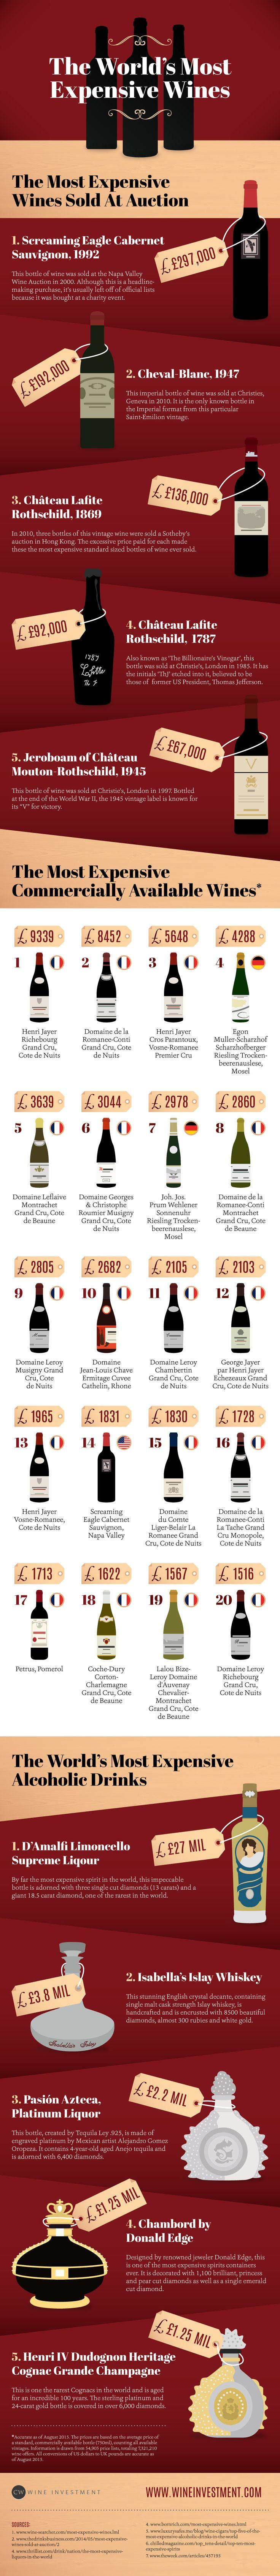 An infographic reveals the world's most expensive commercially available wines, the most expensive wines sold at auction and the world's most expensive alcoholi